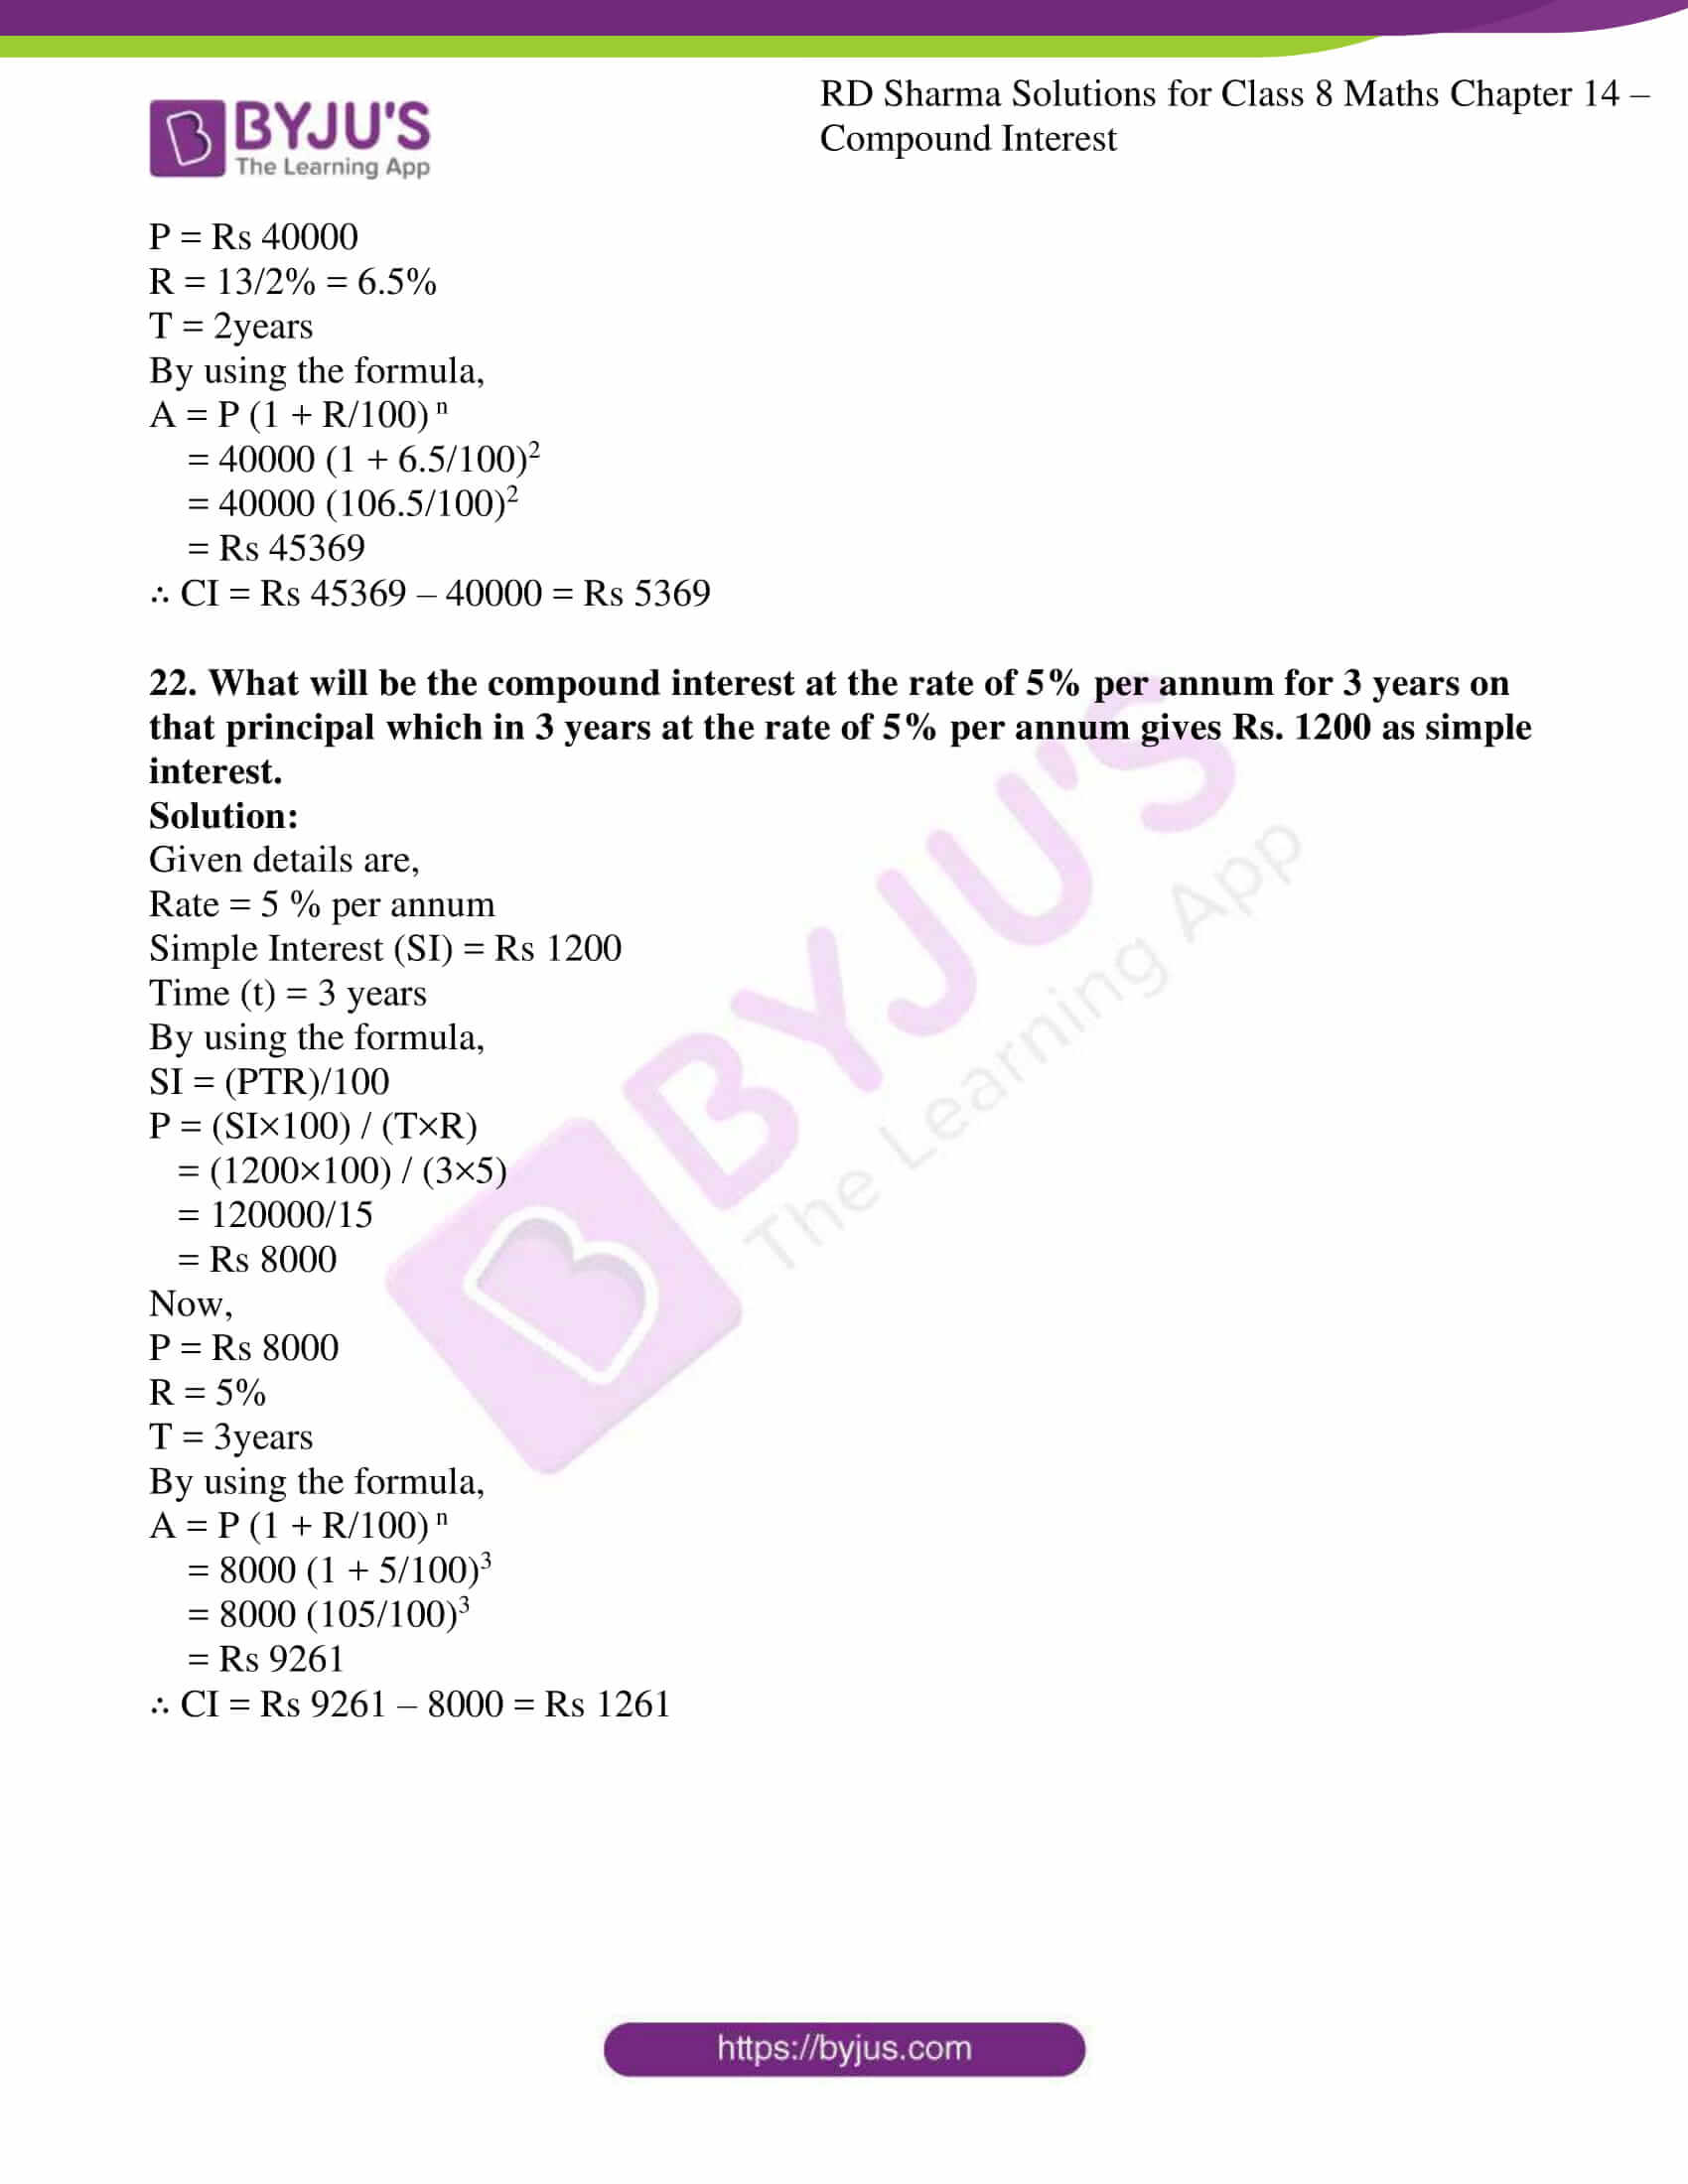 rd sharma class 8 maths chapter 14 exercise 14.2